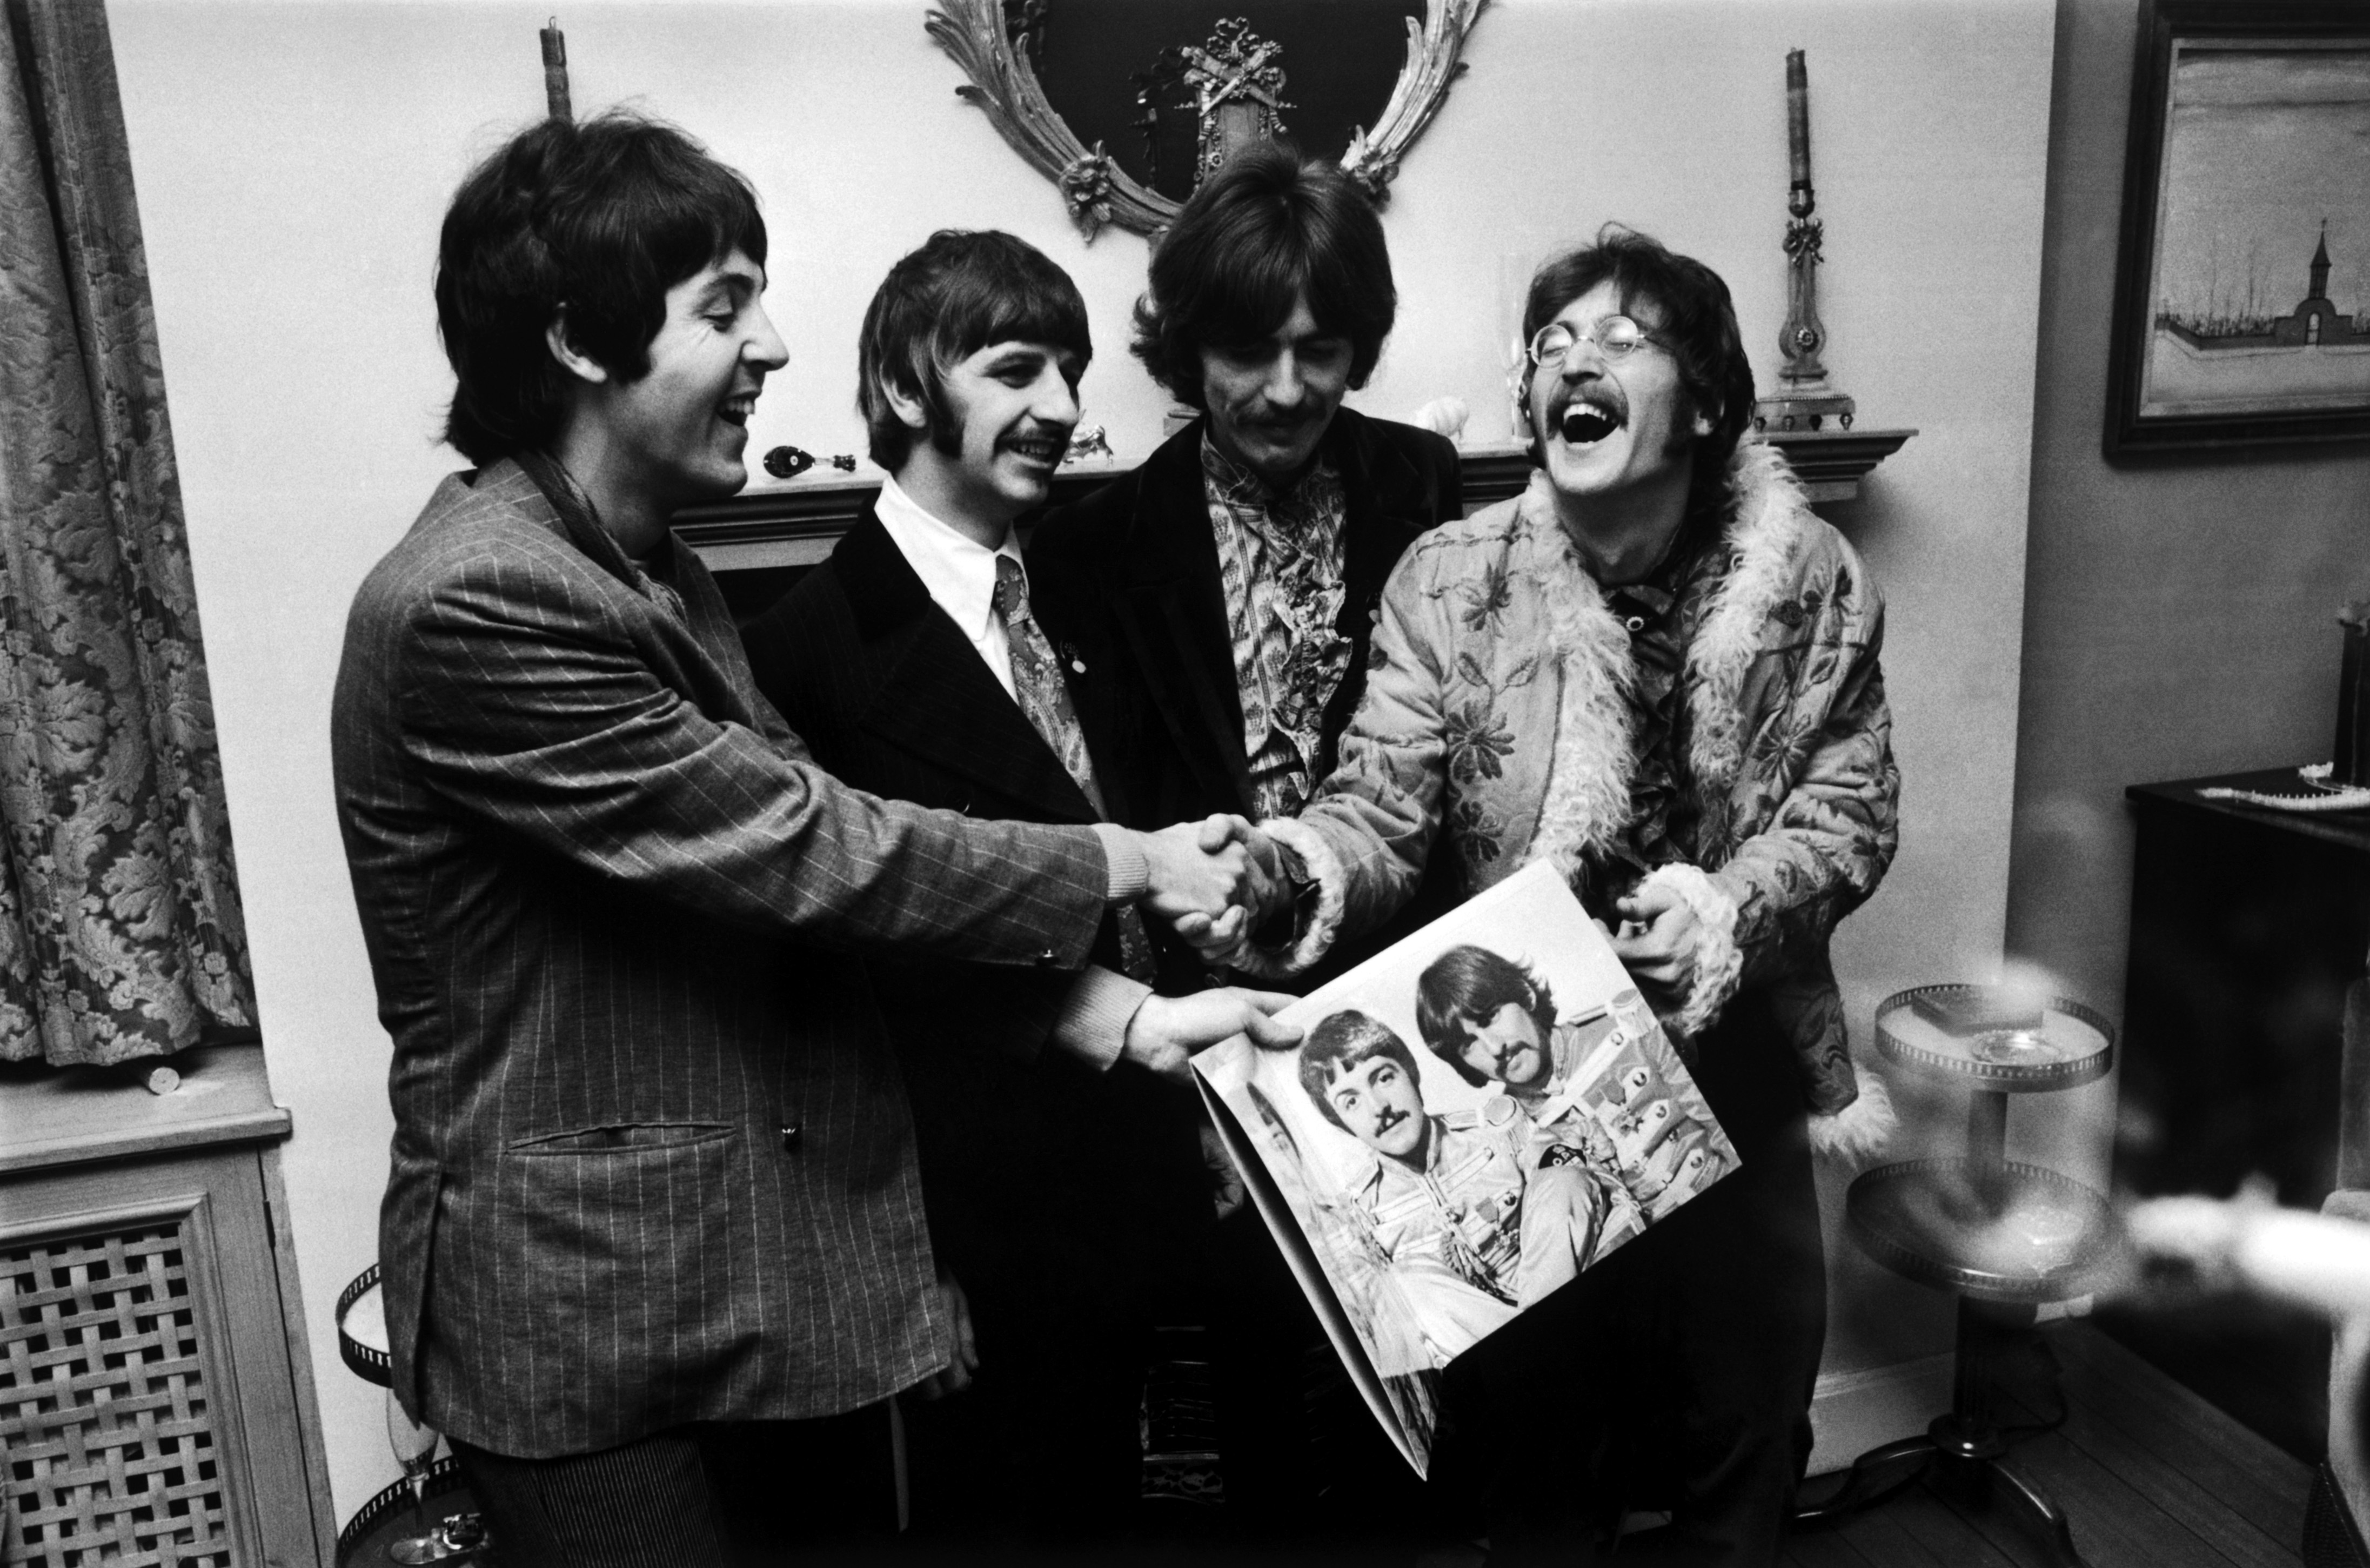 The Beatles hold the 'Sgt. Pepper's' album cover